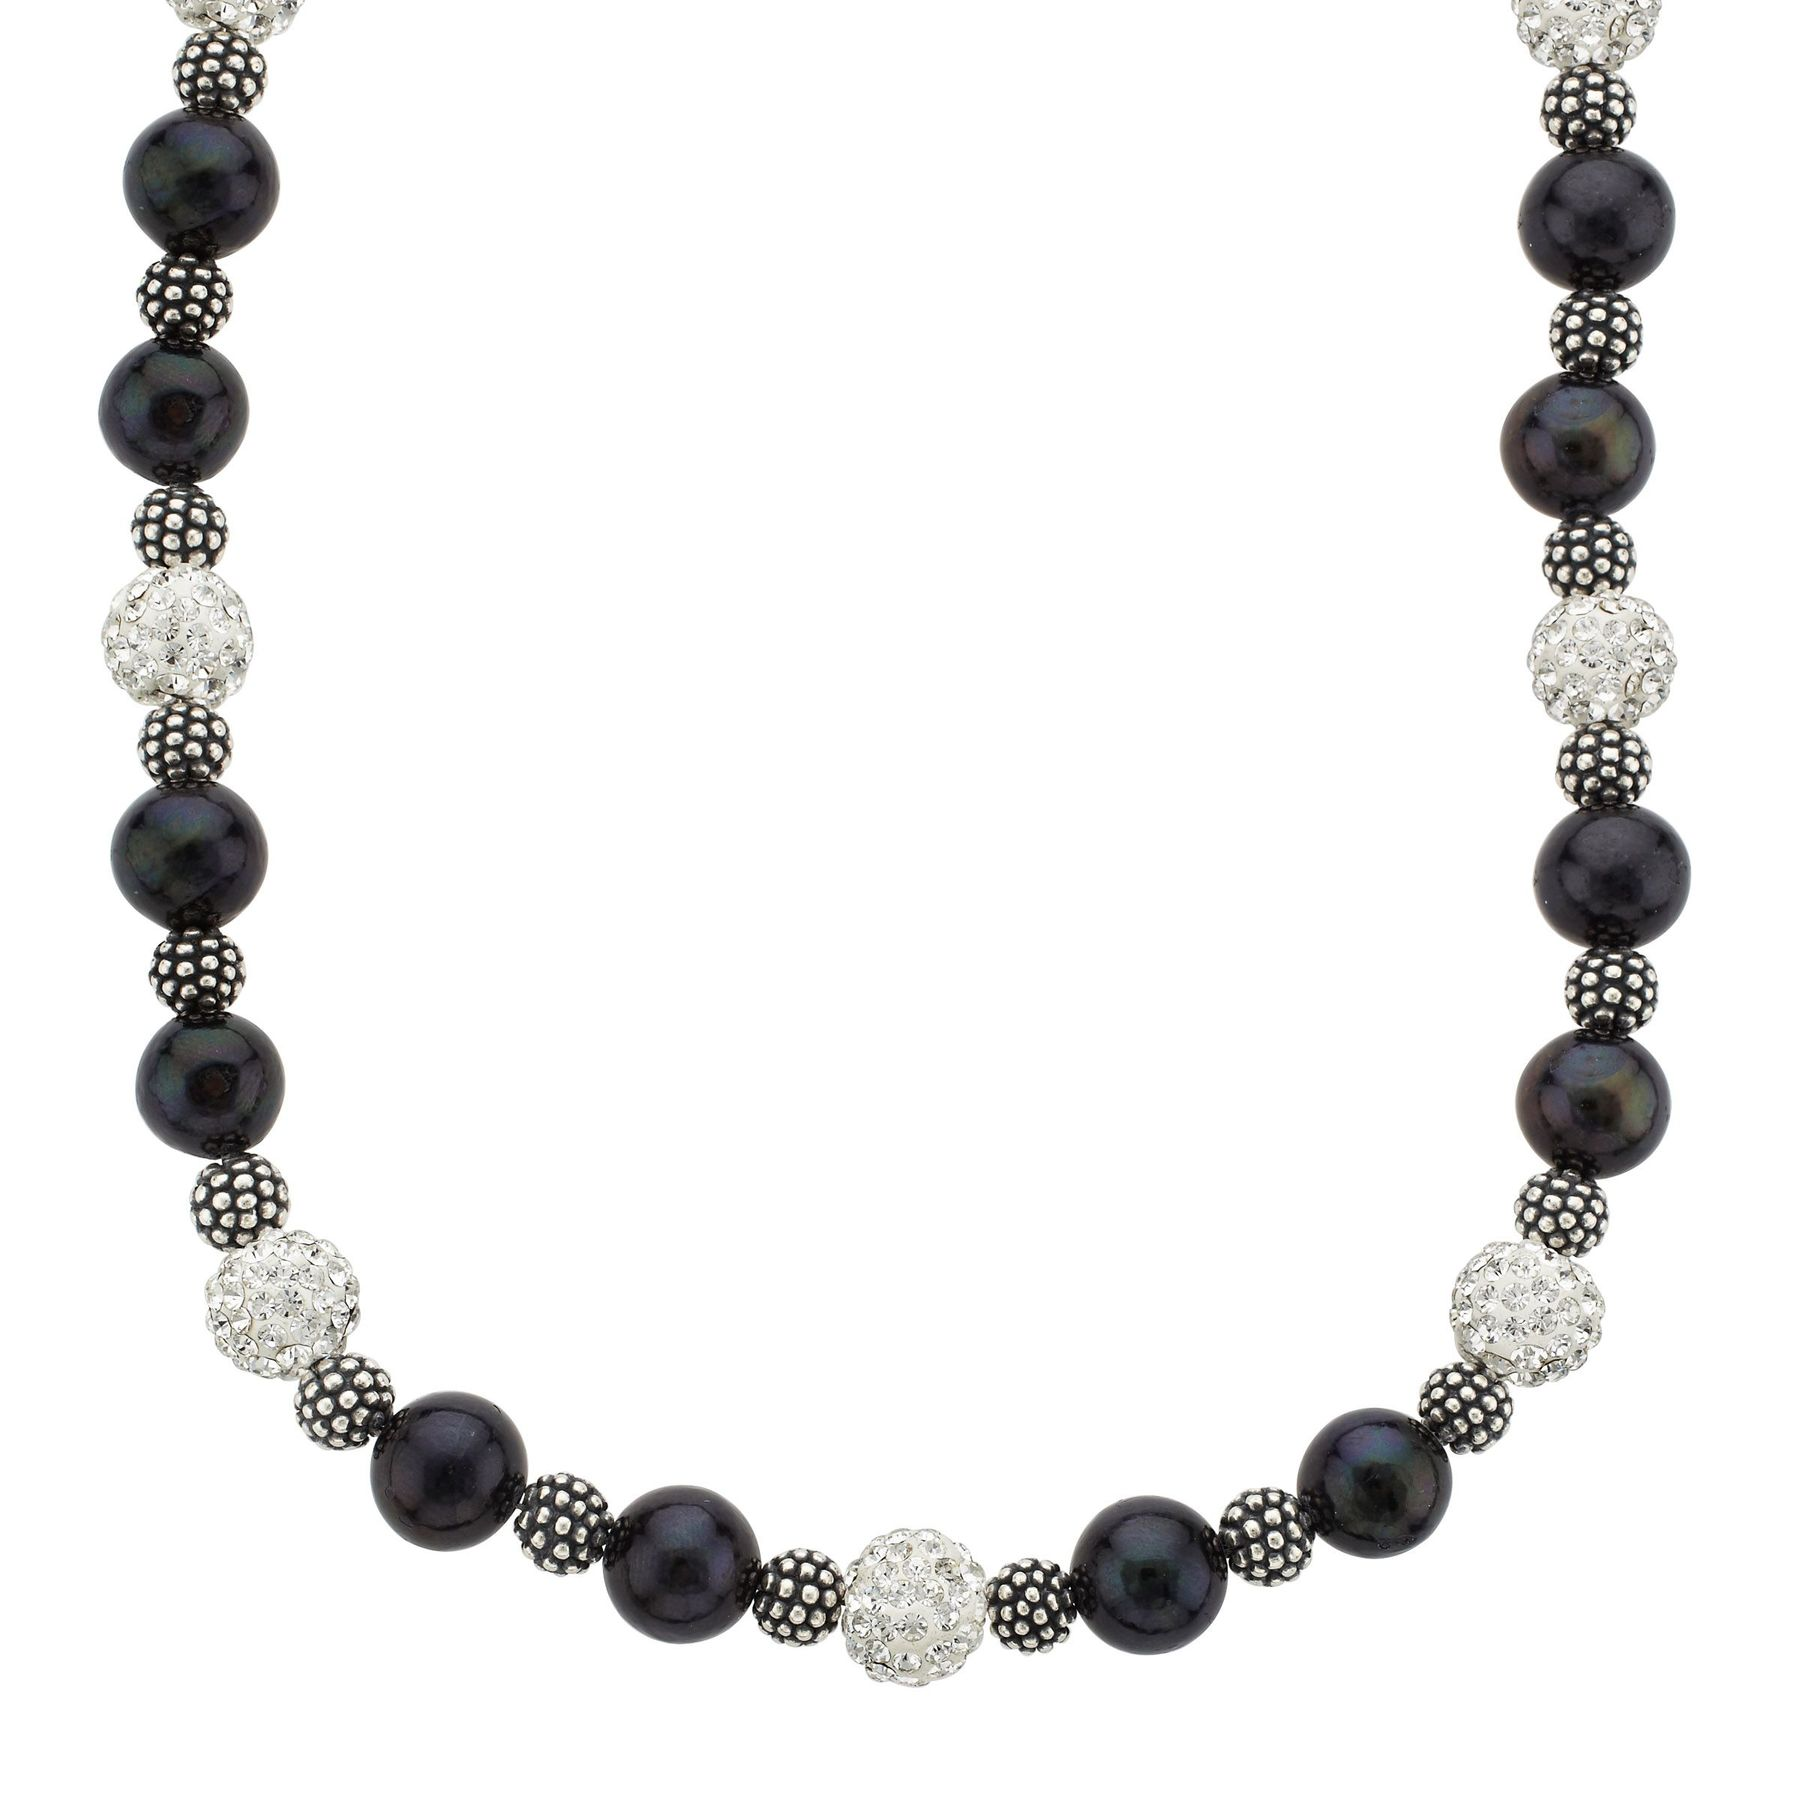 smith pearls genuine accessories pearl black grey rice boston necklace shop classic